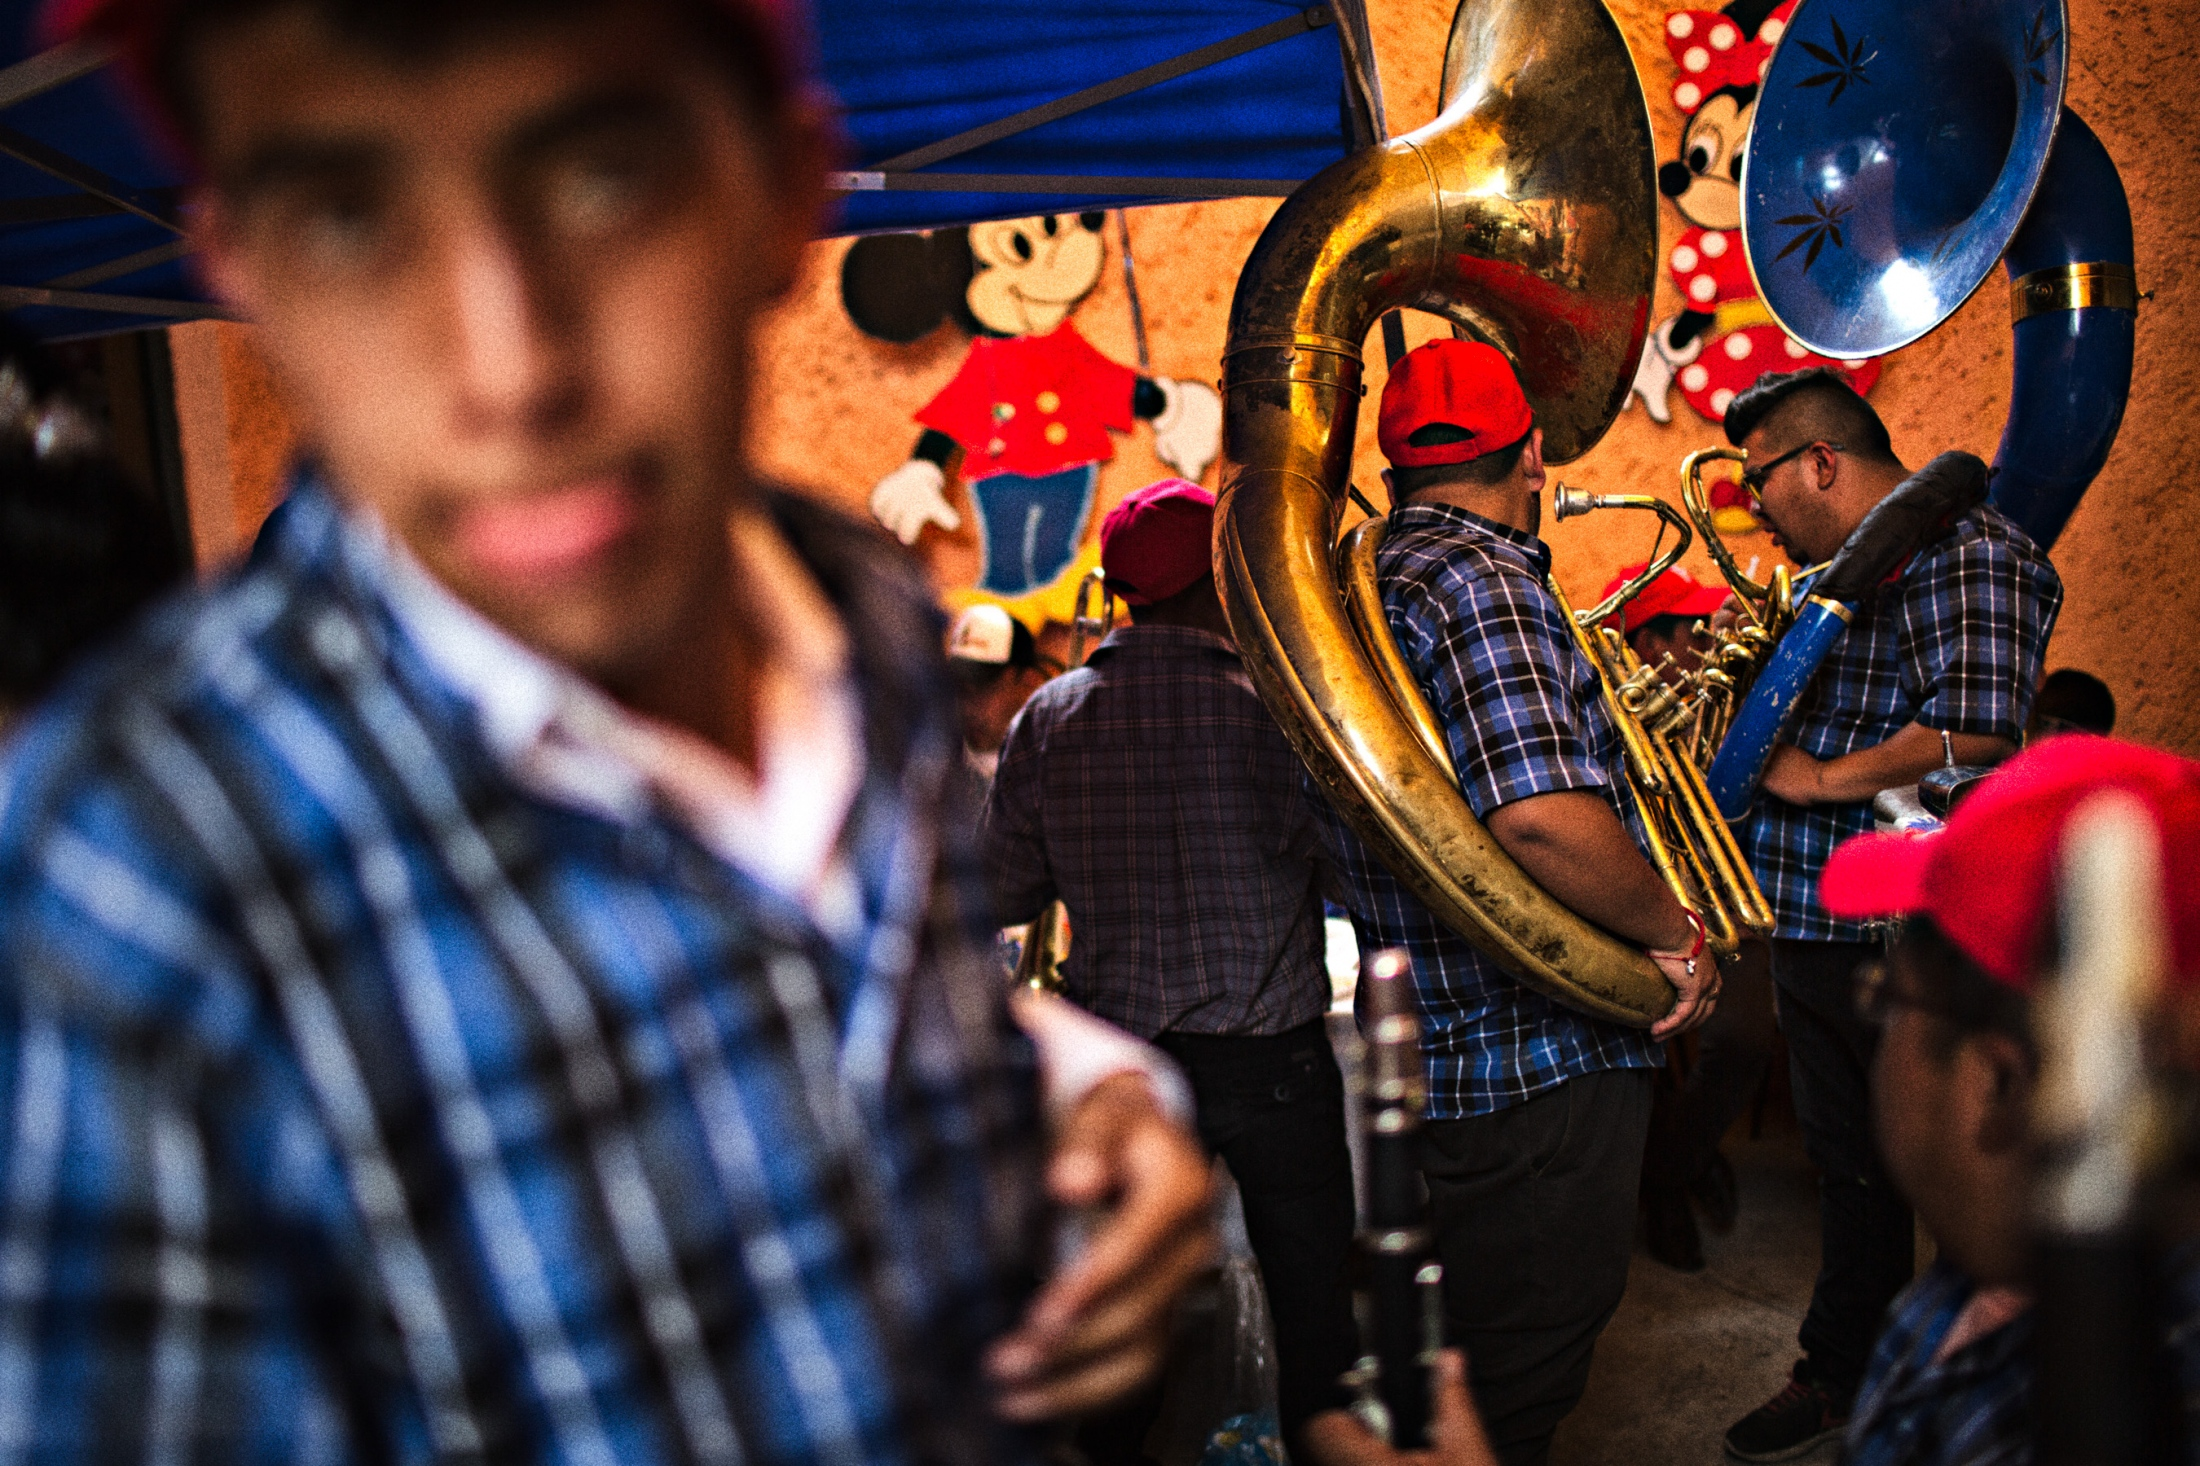 Musicians are omnipresent at all events around Niñopa.